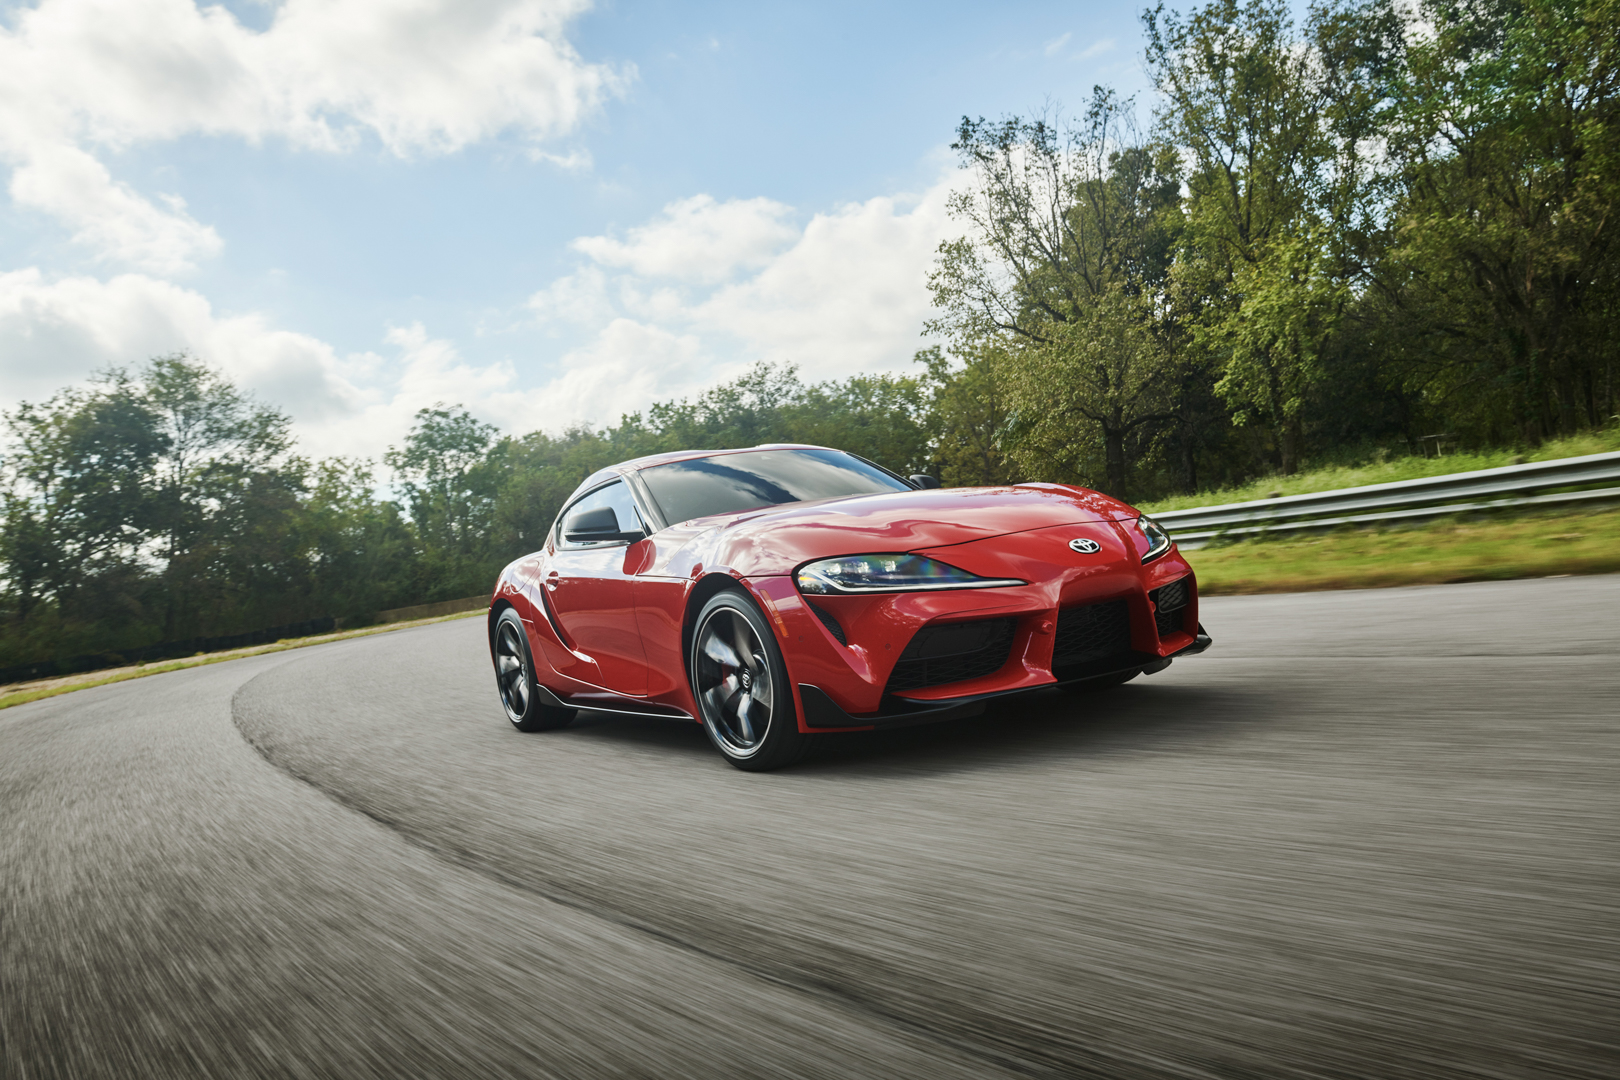 Toyota Supra is Evolve Automotive's next project car - Motor Sport HQ